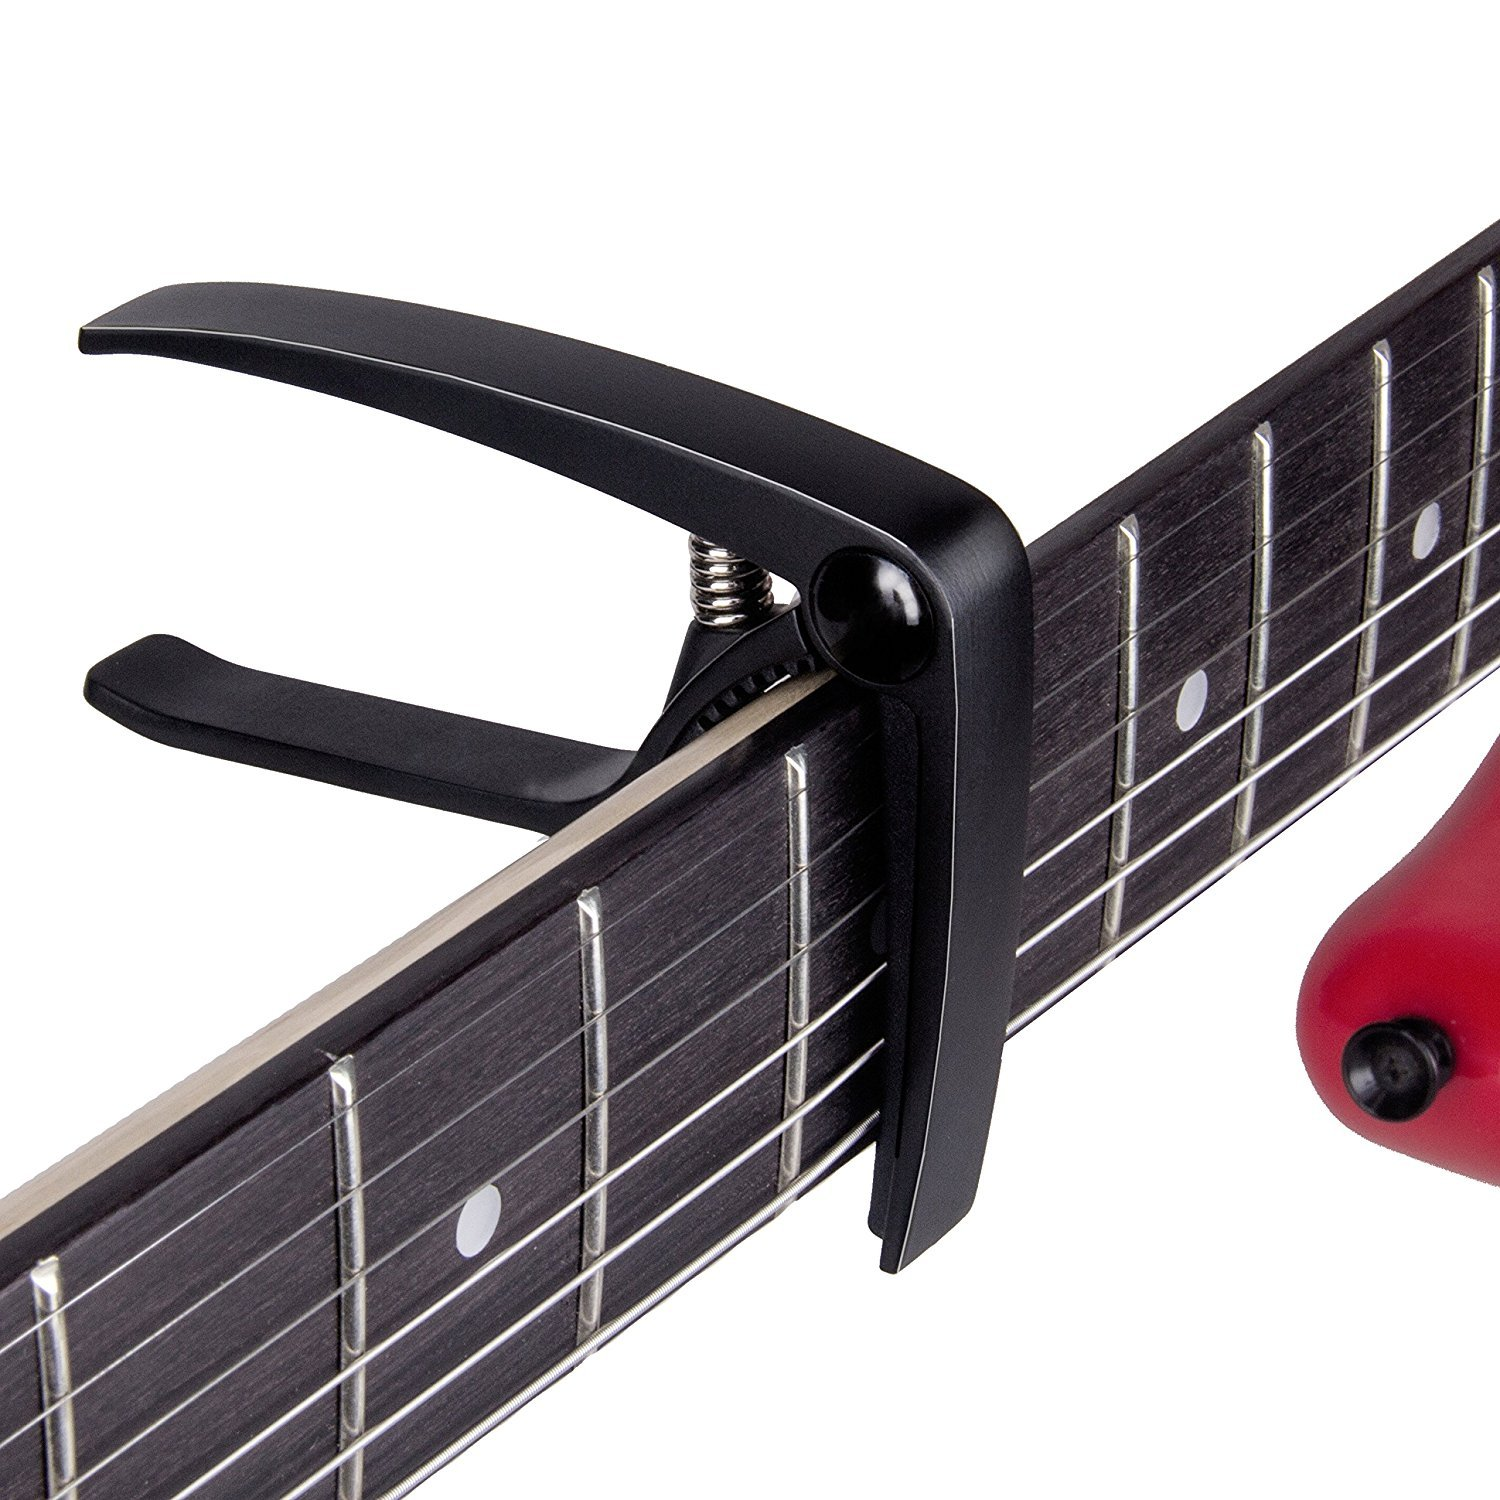 Mugig Guitar Capo for Acoustic,Electric and Classical Guitar, Quick Release/Change Spring Capo Made of Aluminium Alloy,Black